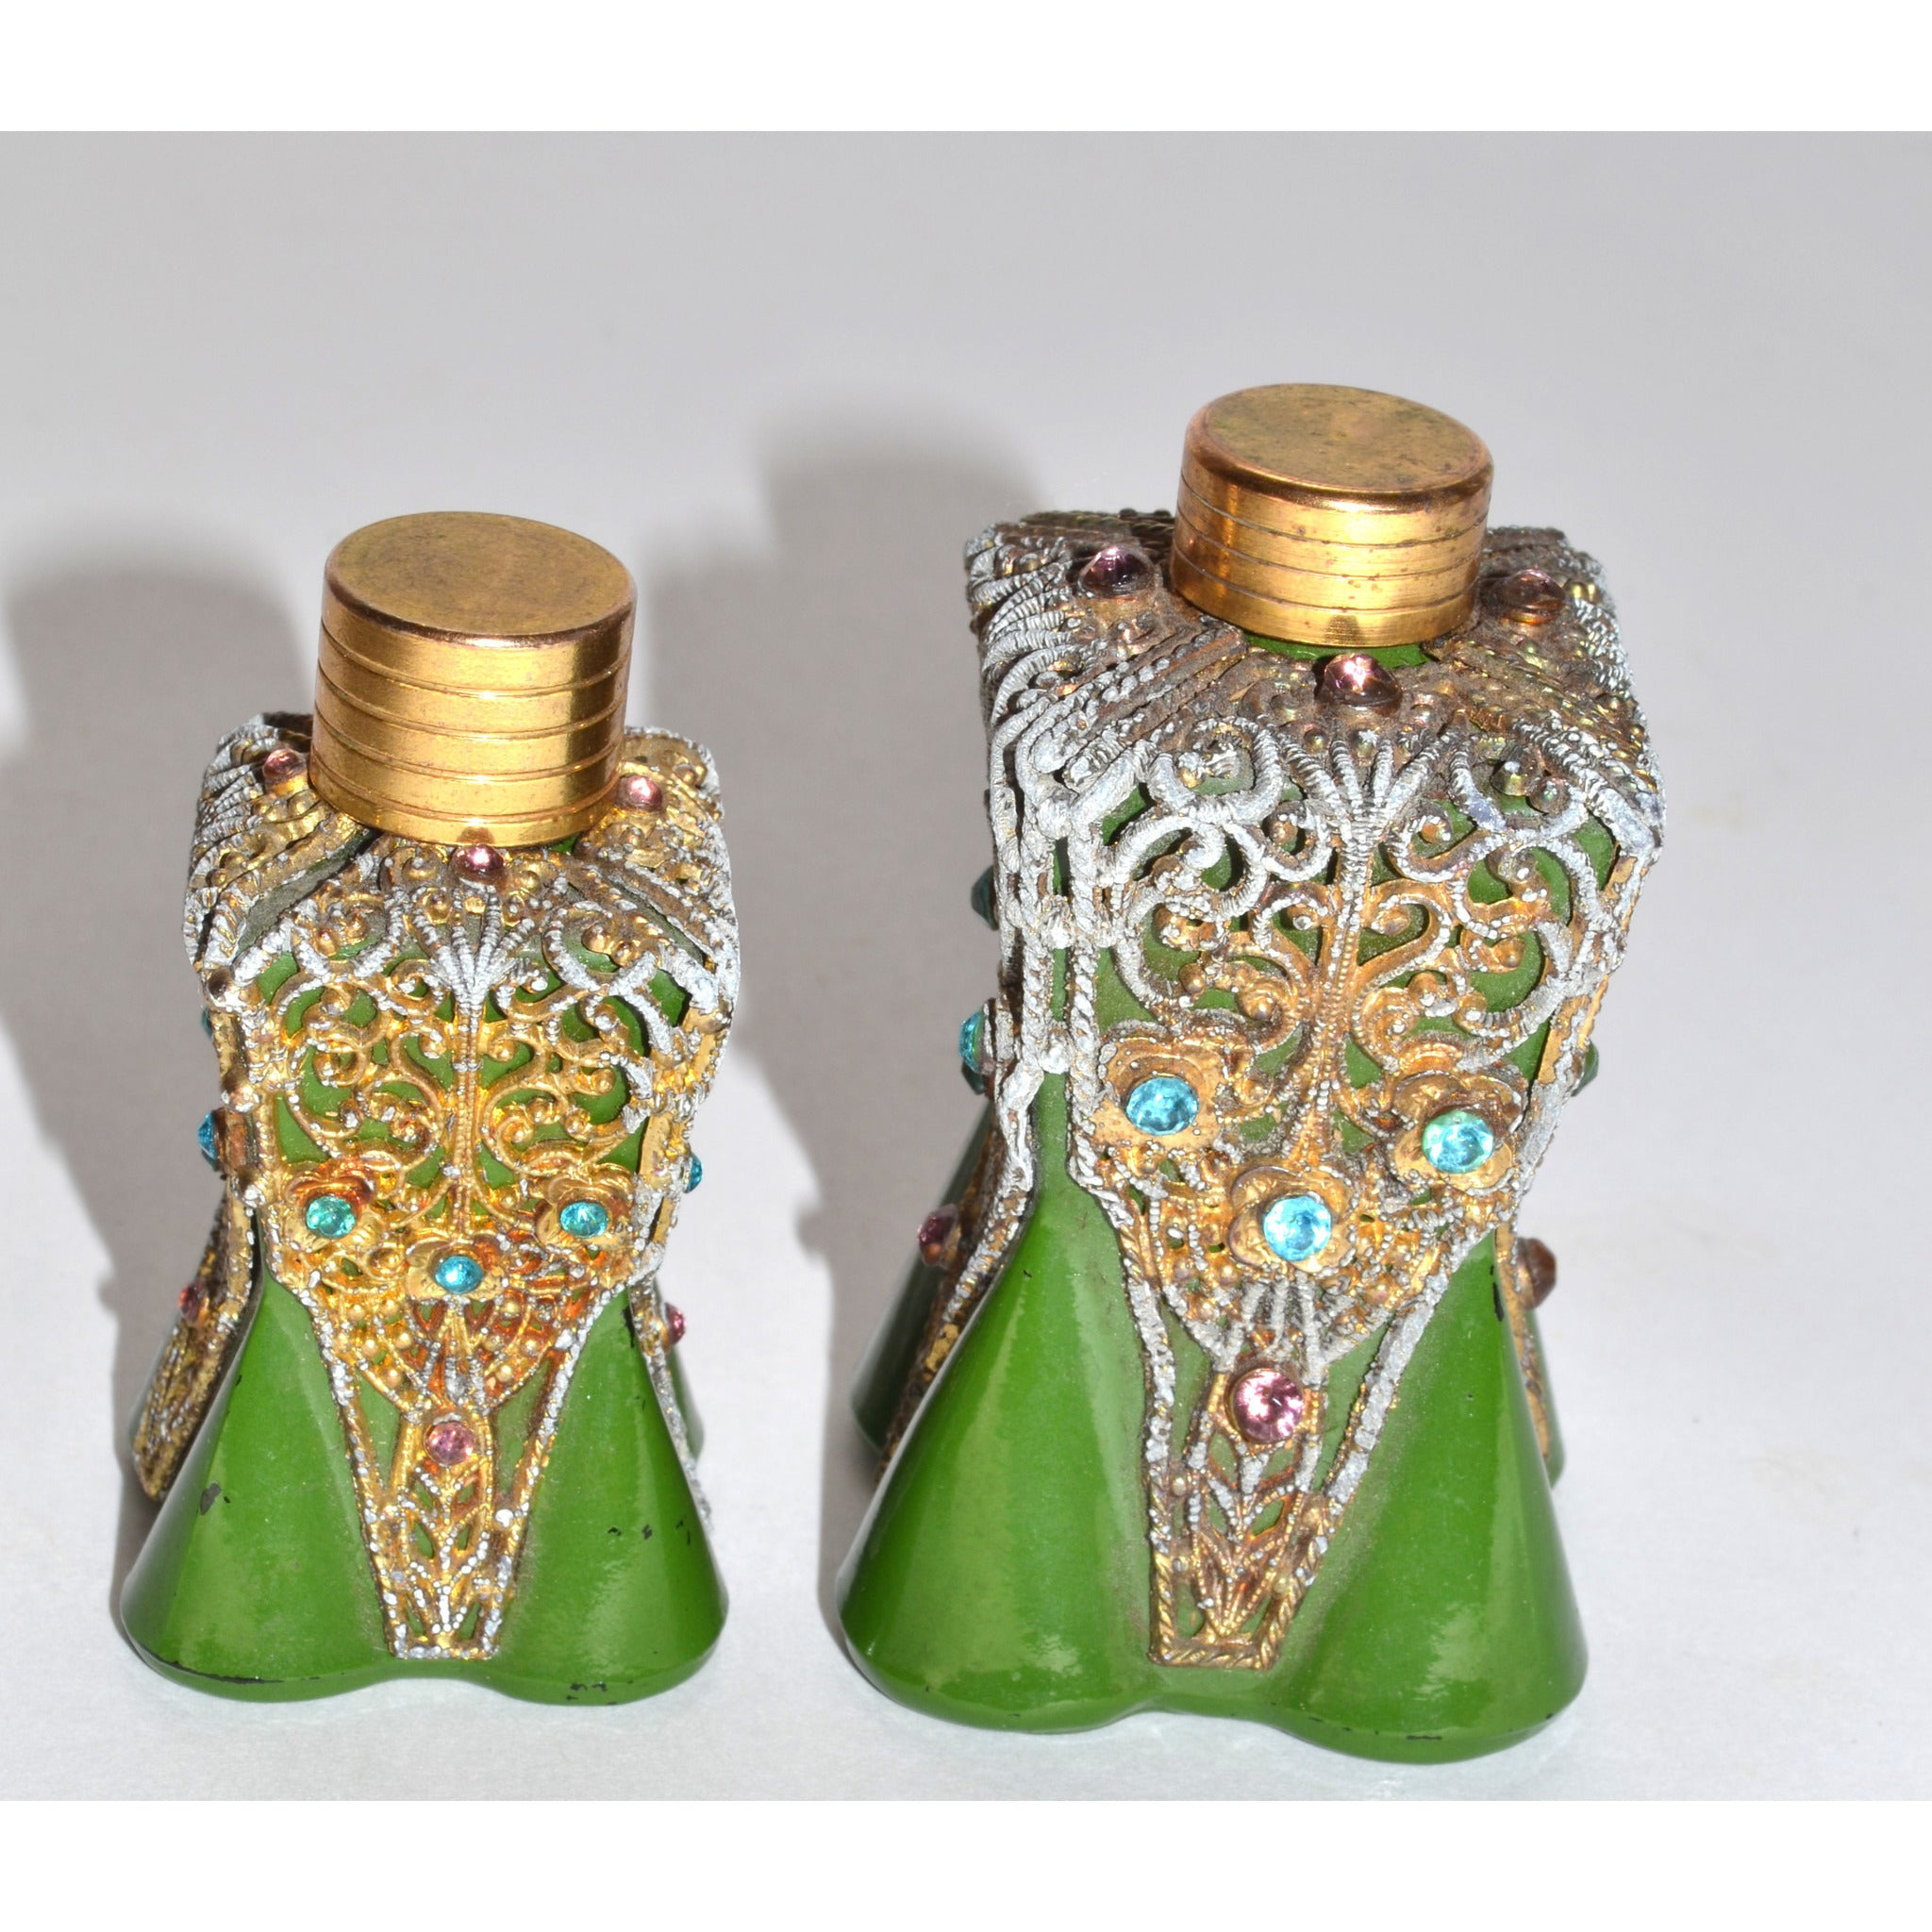 1930's Ornate Jeweled Green Painted Scent Bottles